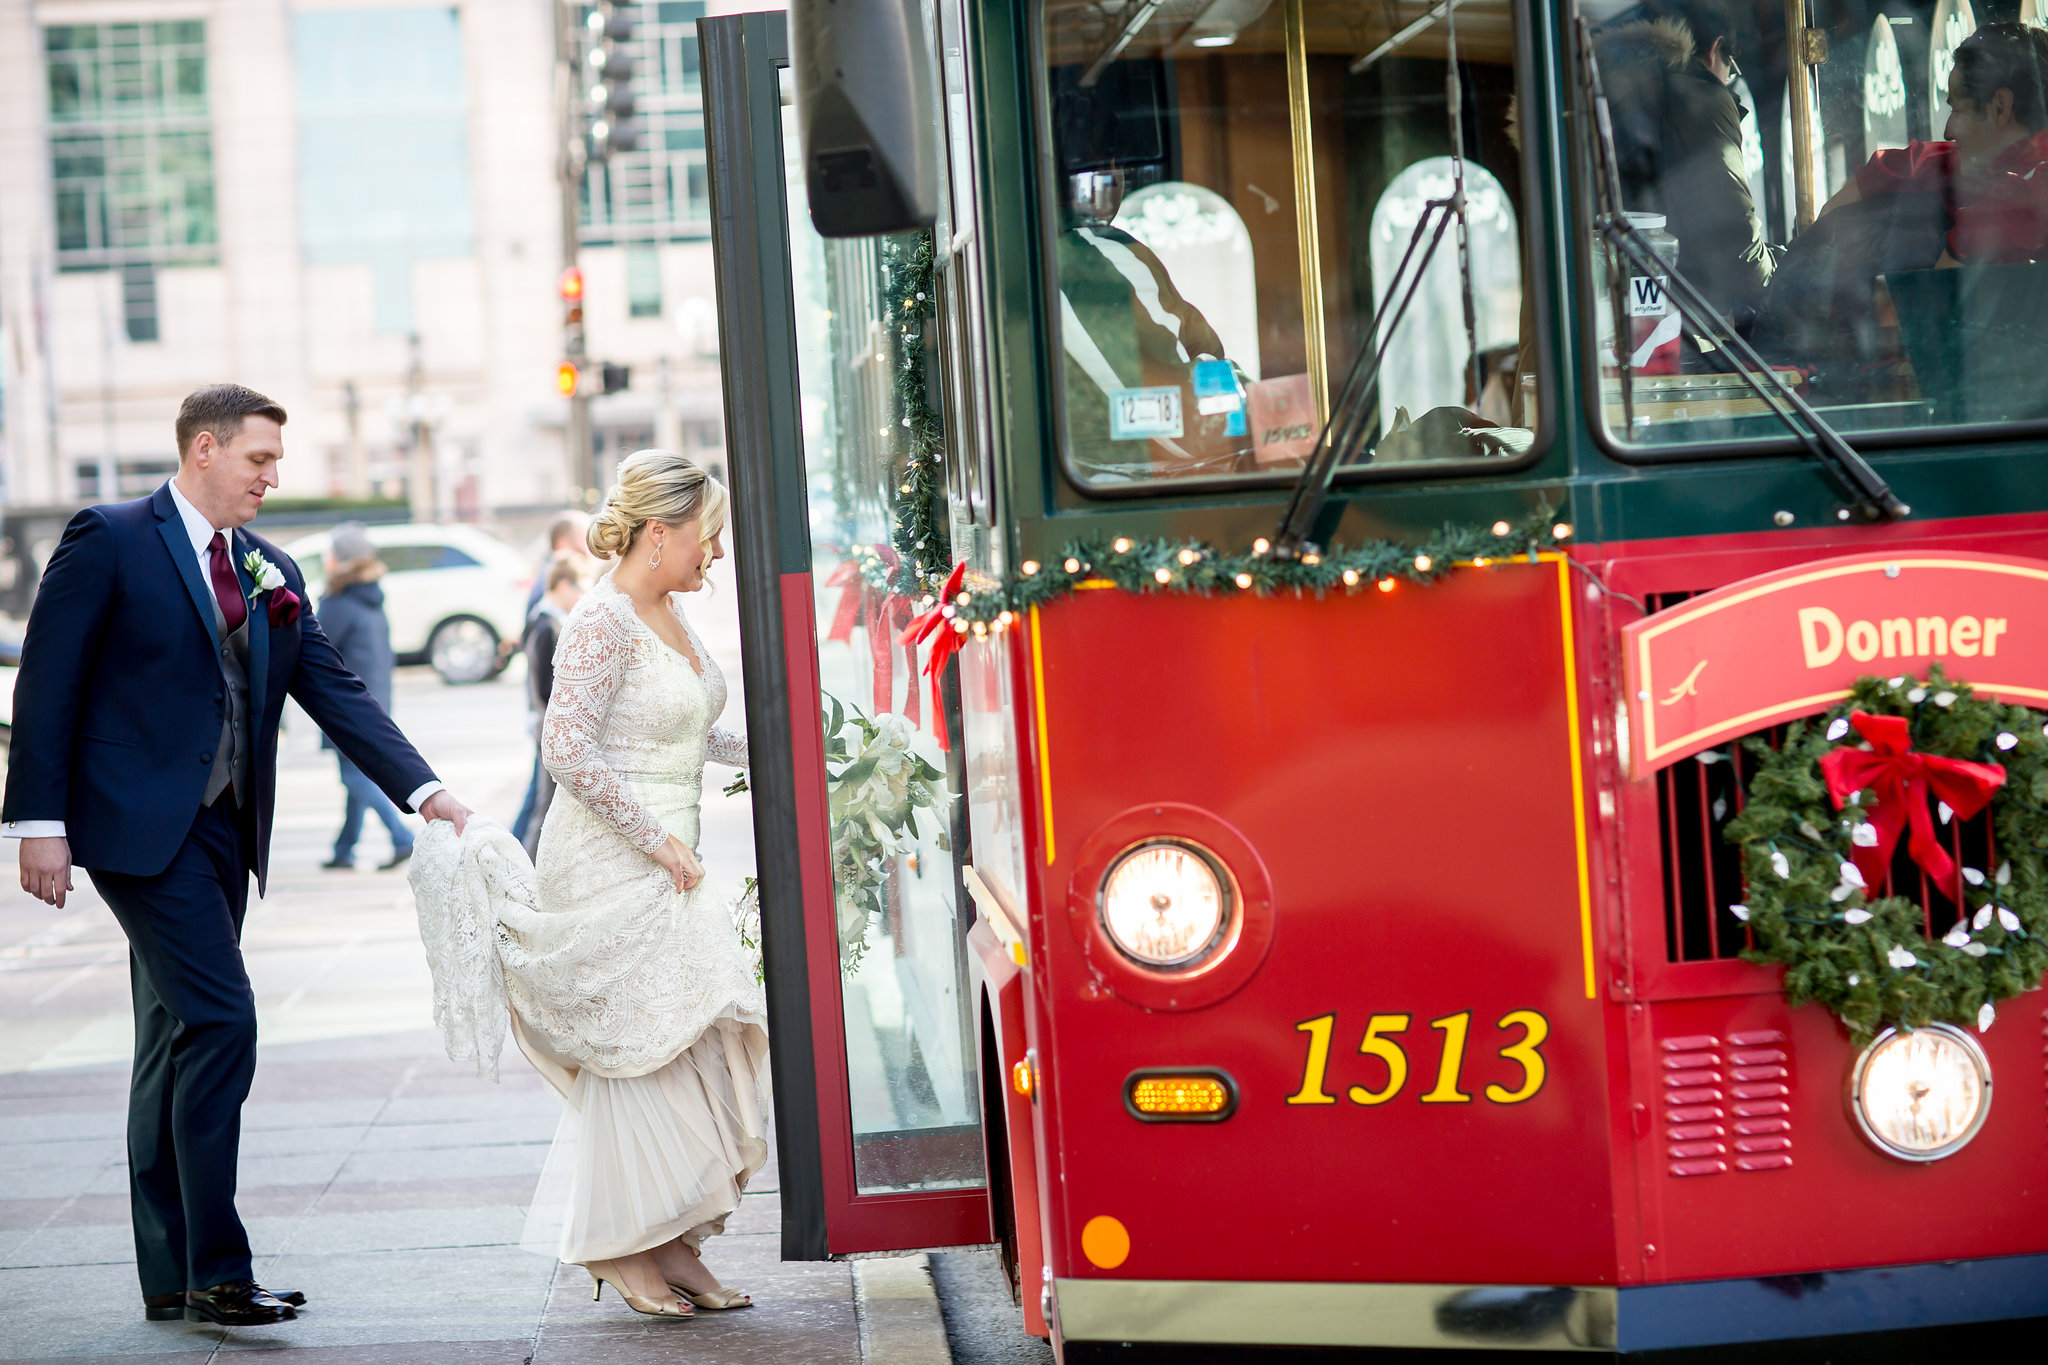 You can't have a holiday season wedding and ride in anything BUT a holiday themed trolley, right?!